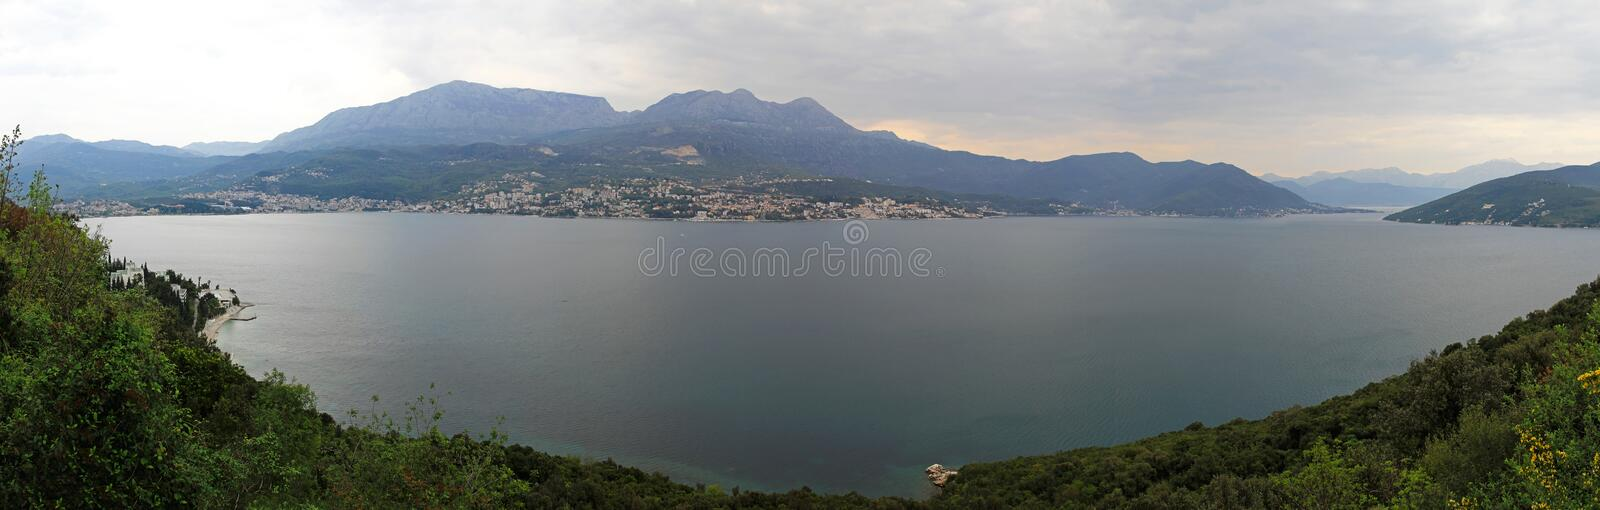 Boka Kotorska Bay. Panorama of Boka Kotorska bay in Montenegro stock photos